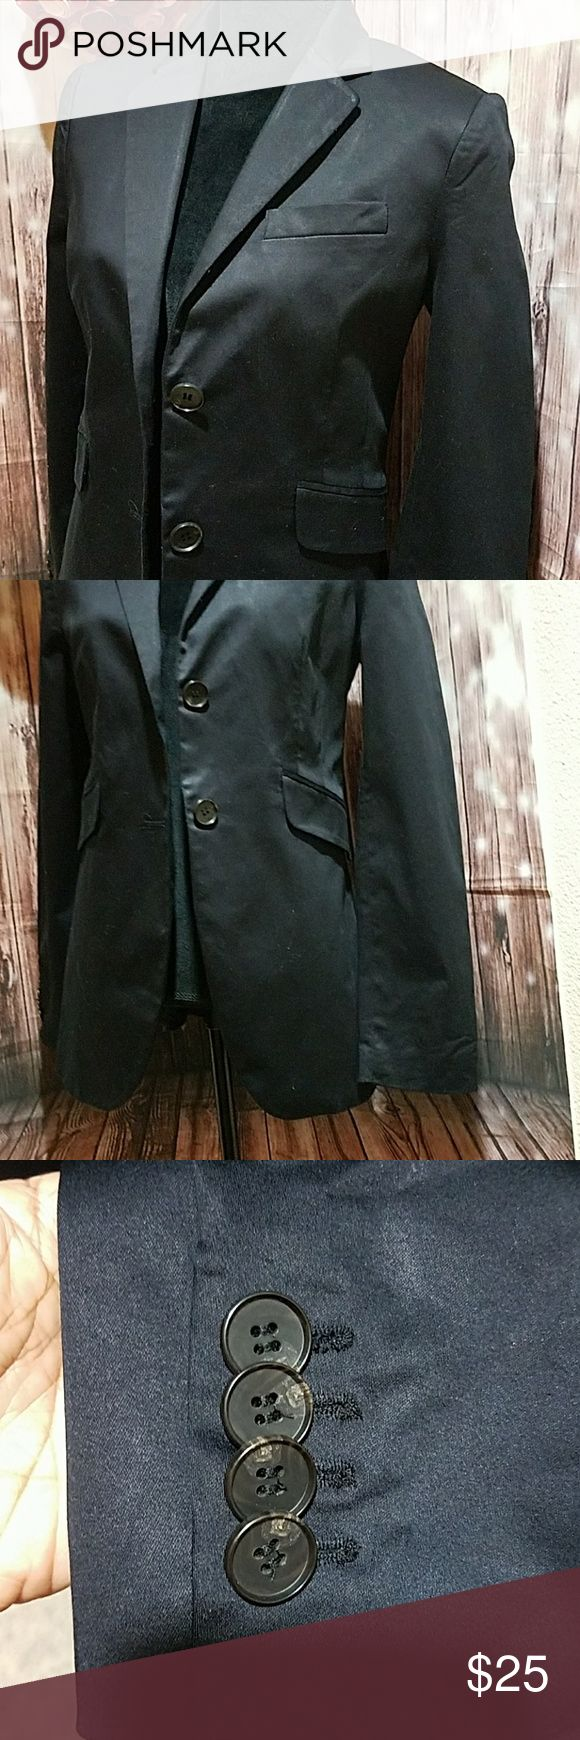 """Mango Black Blazer Black cotton jacket with 2 button closure, 2 slanted faux pockets on front waist area, and 1 working pocket on left bust. Lined. Split at back - still sewn together. L - 28"""", sleeve L - 25"""" approximately, B - 19"""". US large. Great condition. Mango Jackets & Coats Blazers"""